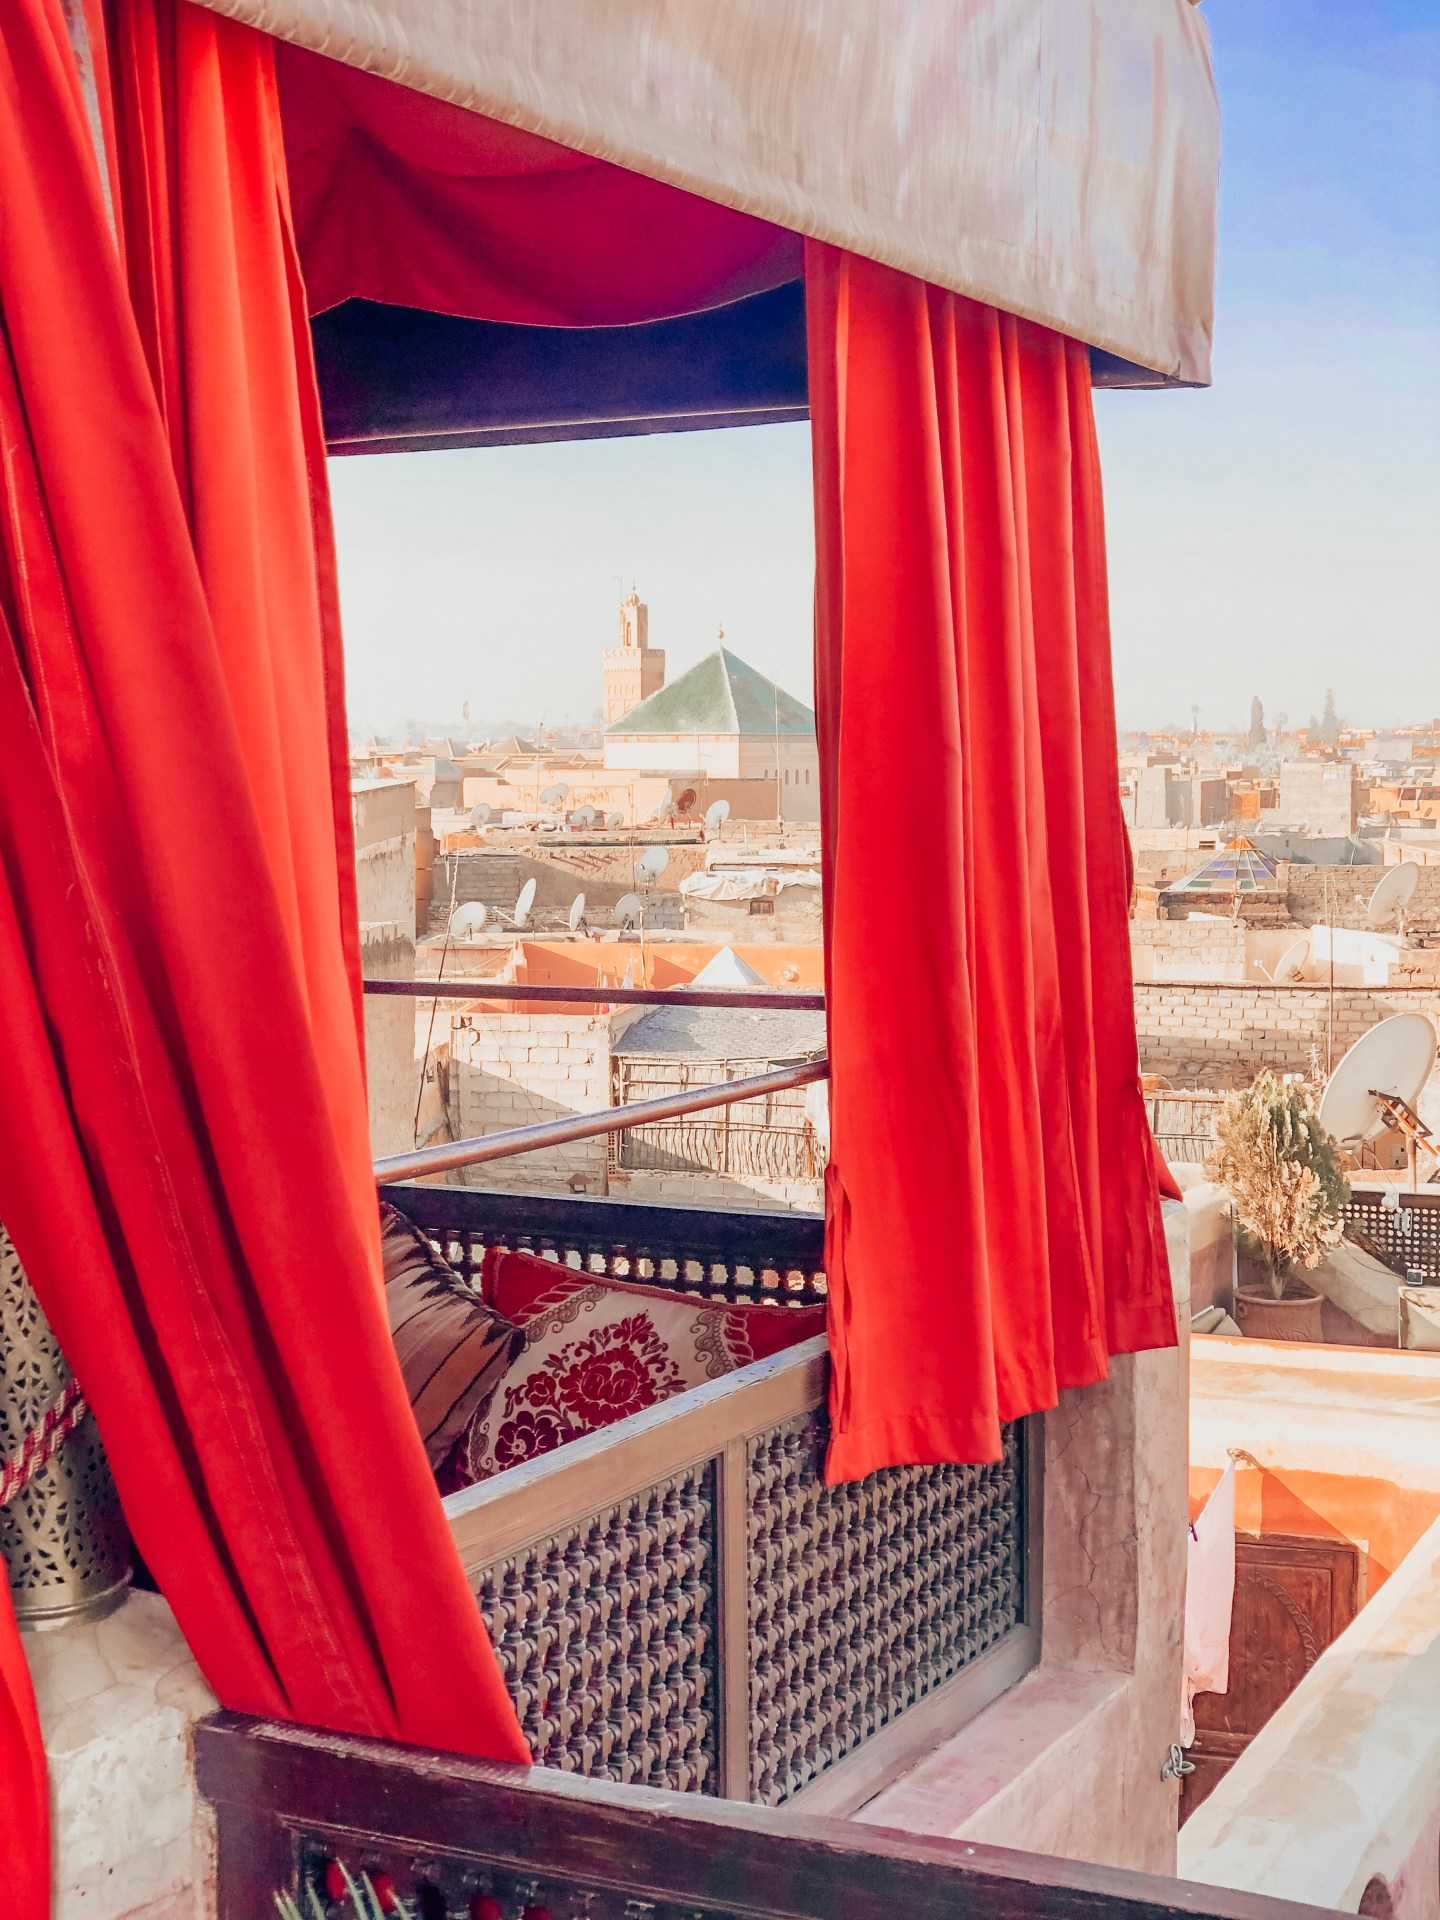 Marrakech rooftop view from a riad